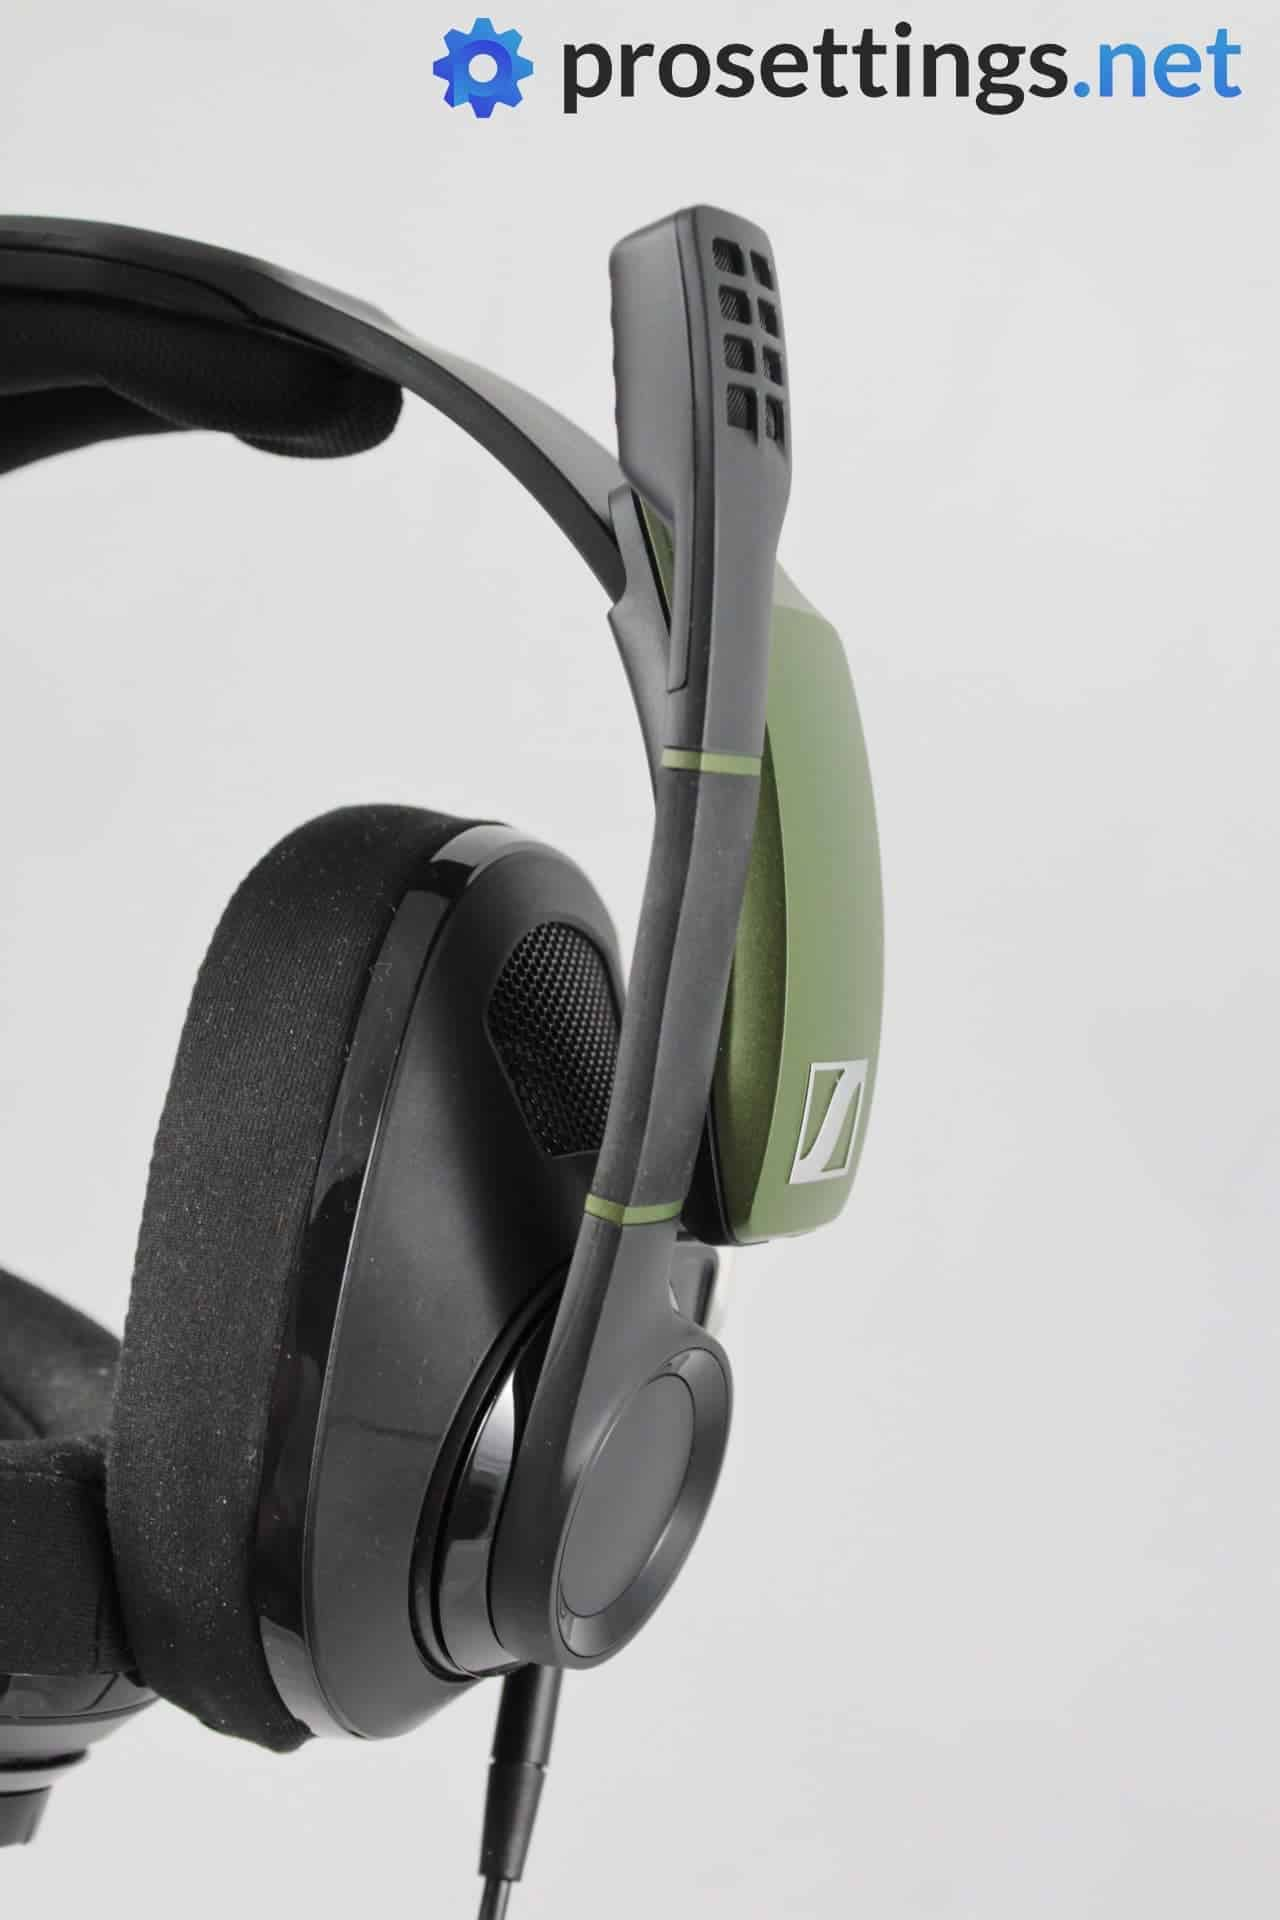 Sennheiser GSP 550 Review | ProSettings net